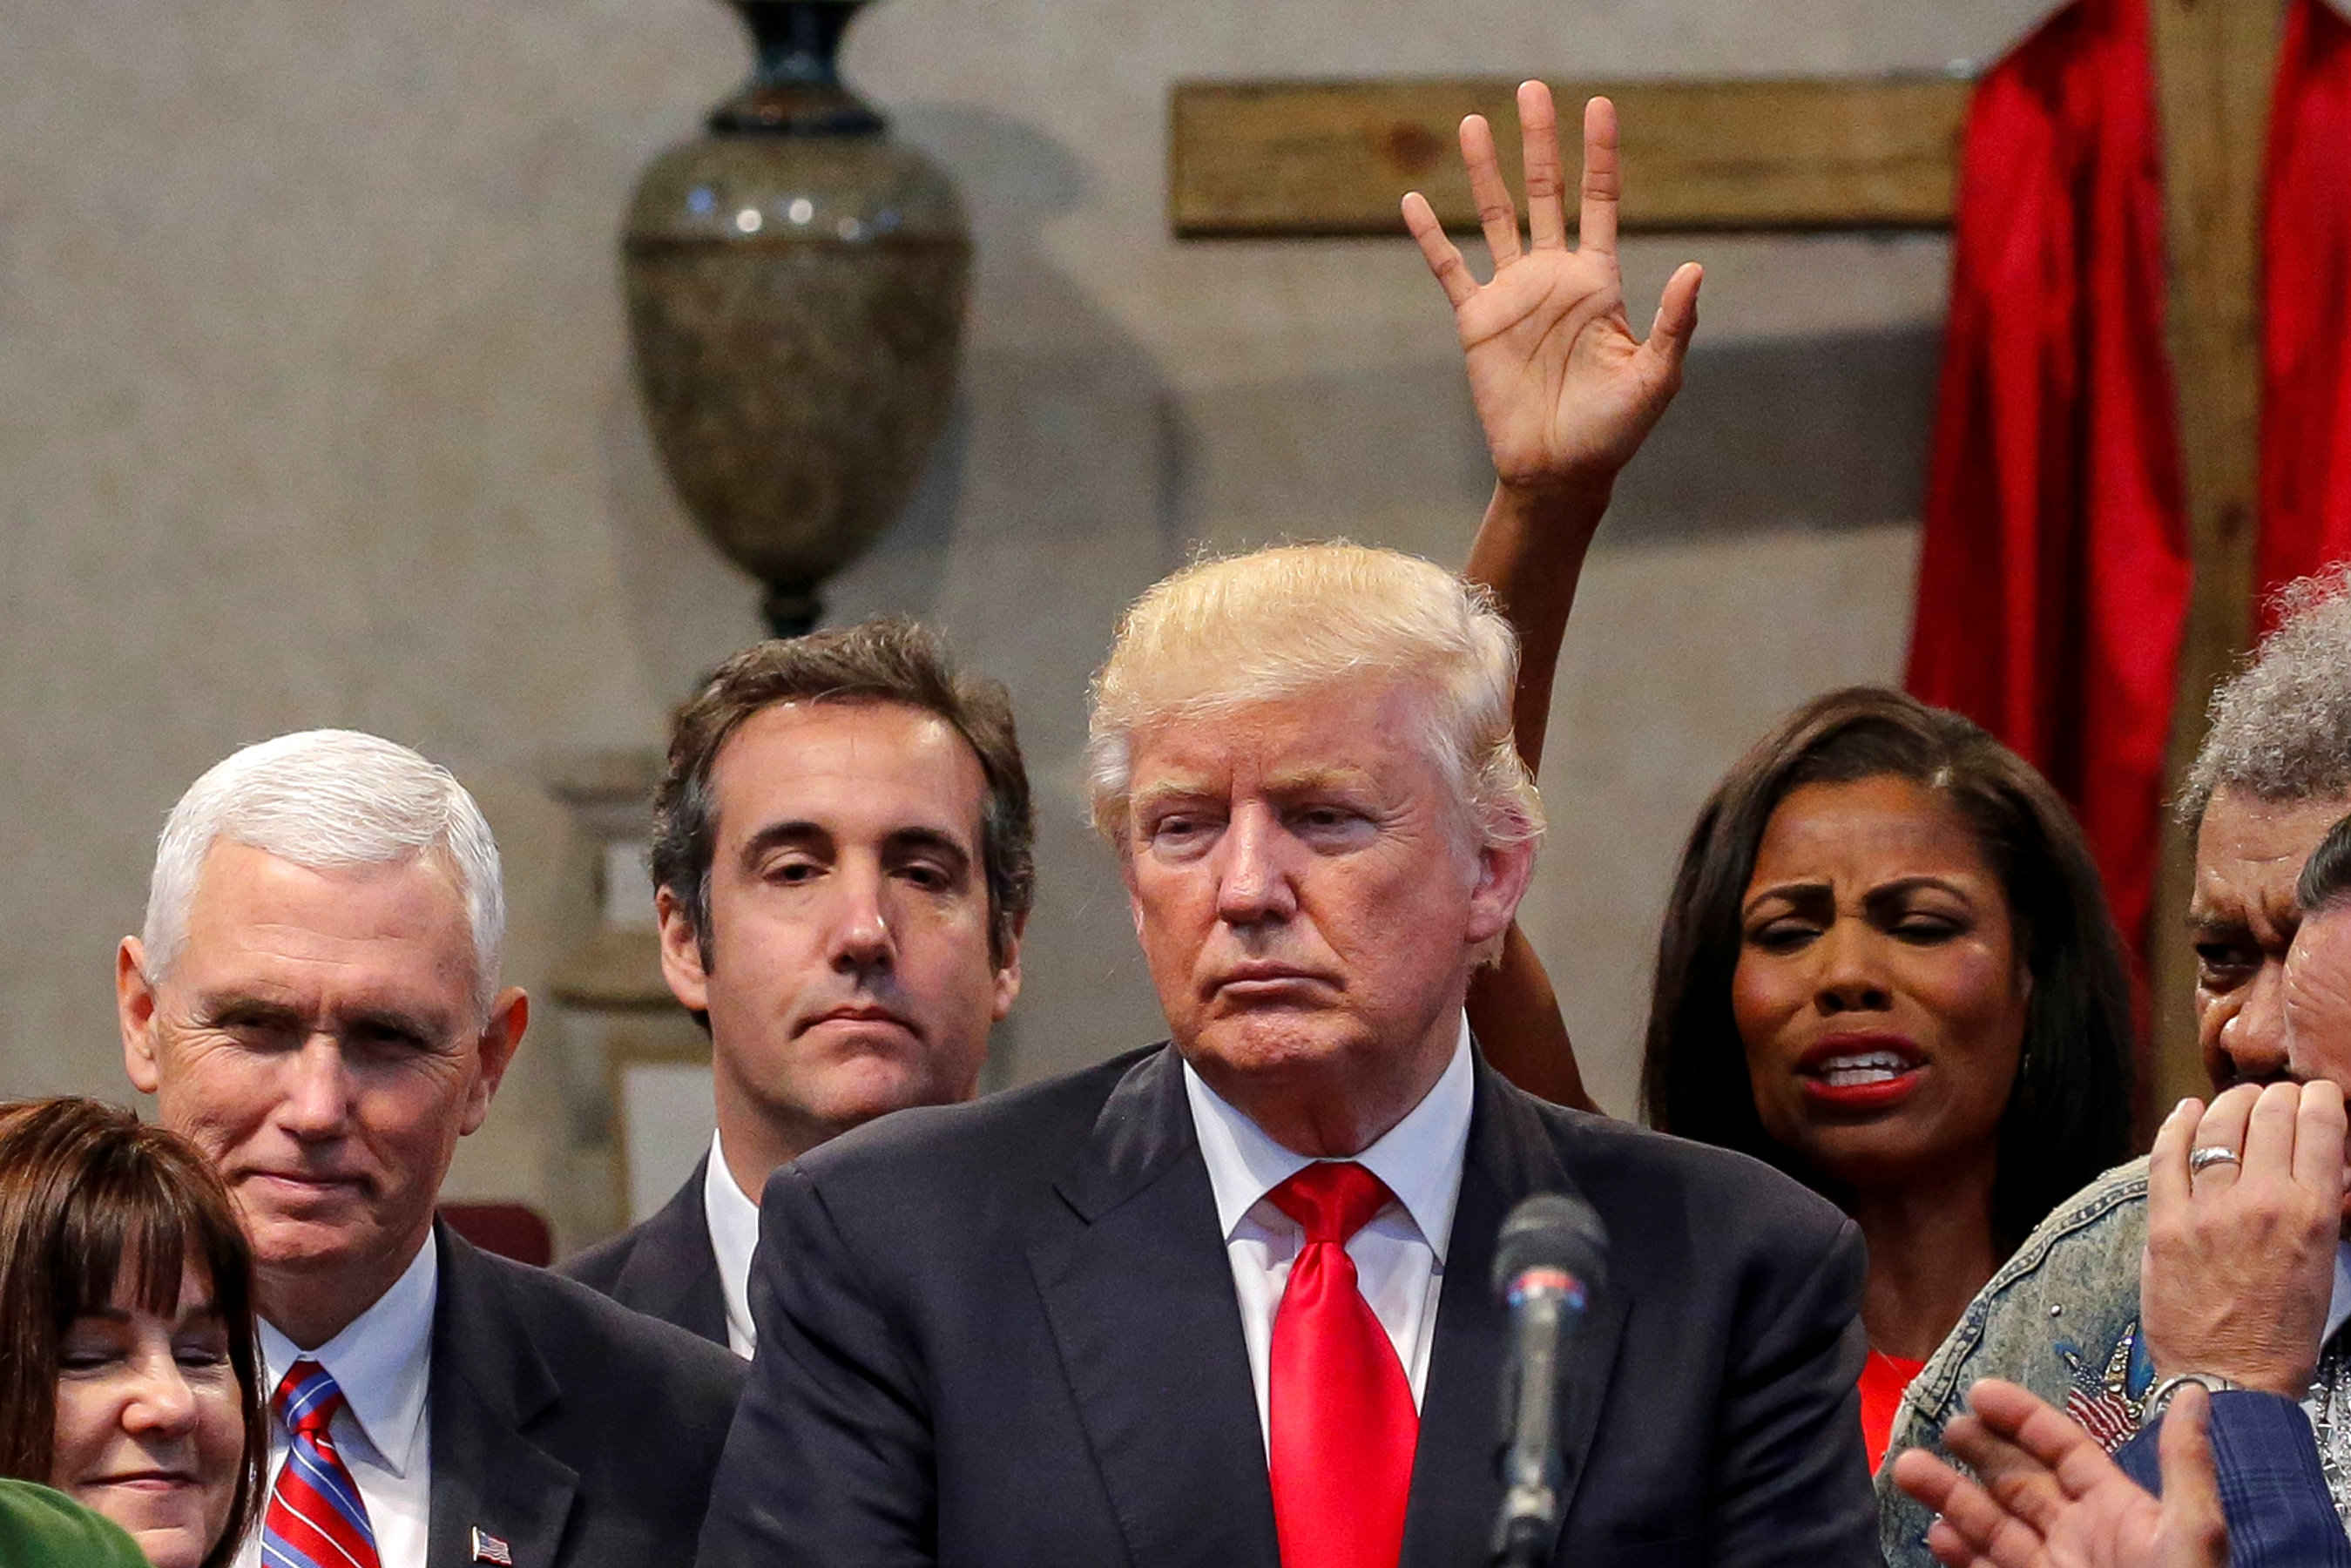 Cohen joins supporters praying over Trump during campaign stop at the New Spirit Revival Center church in Cleveland Heights, Ohio